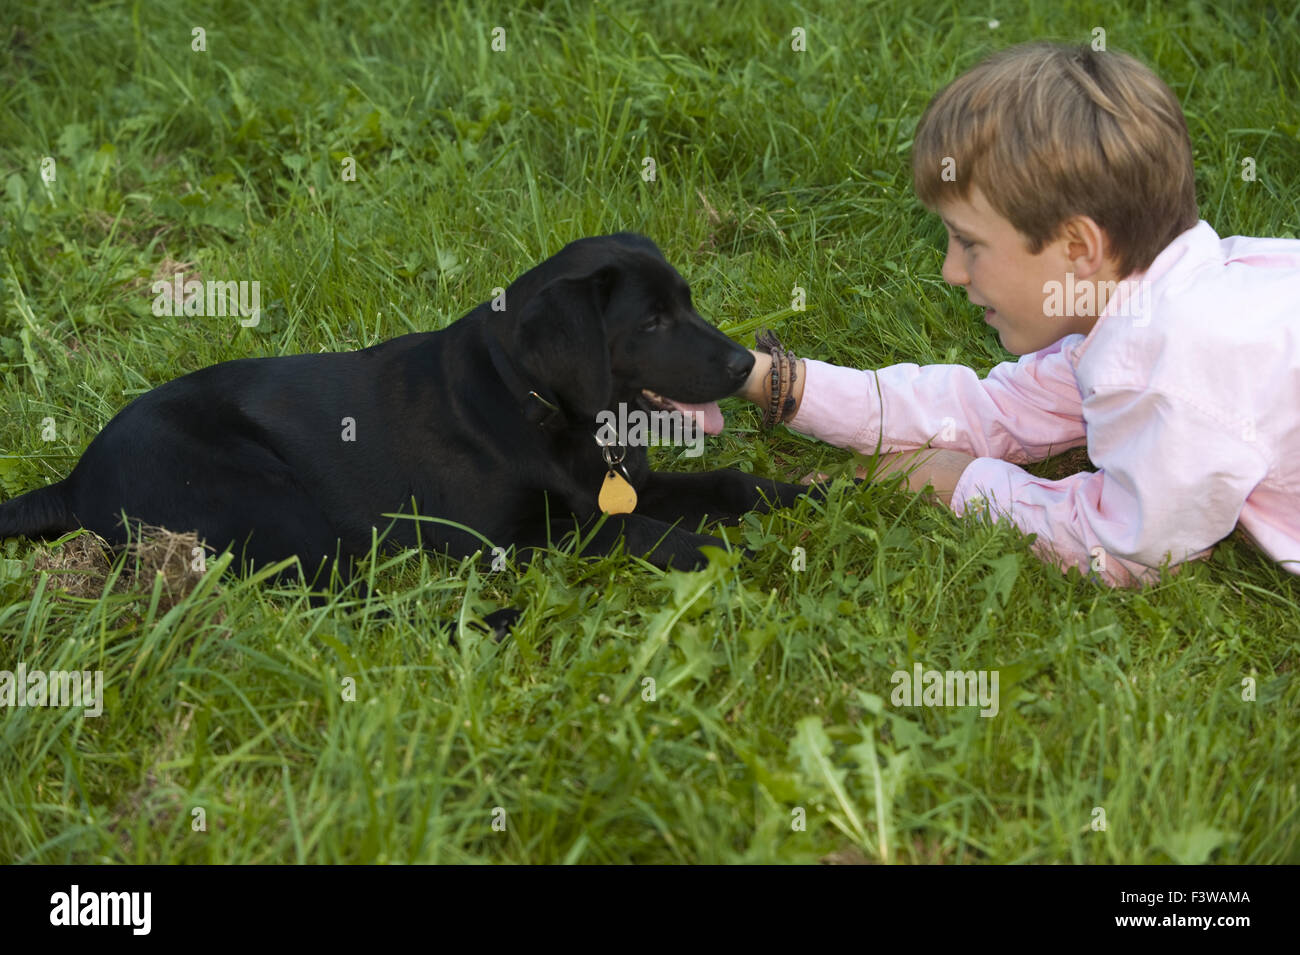 Boy with Labrador puppy - Stock Image